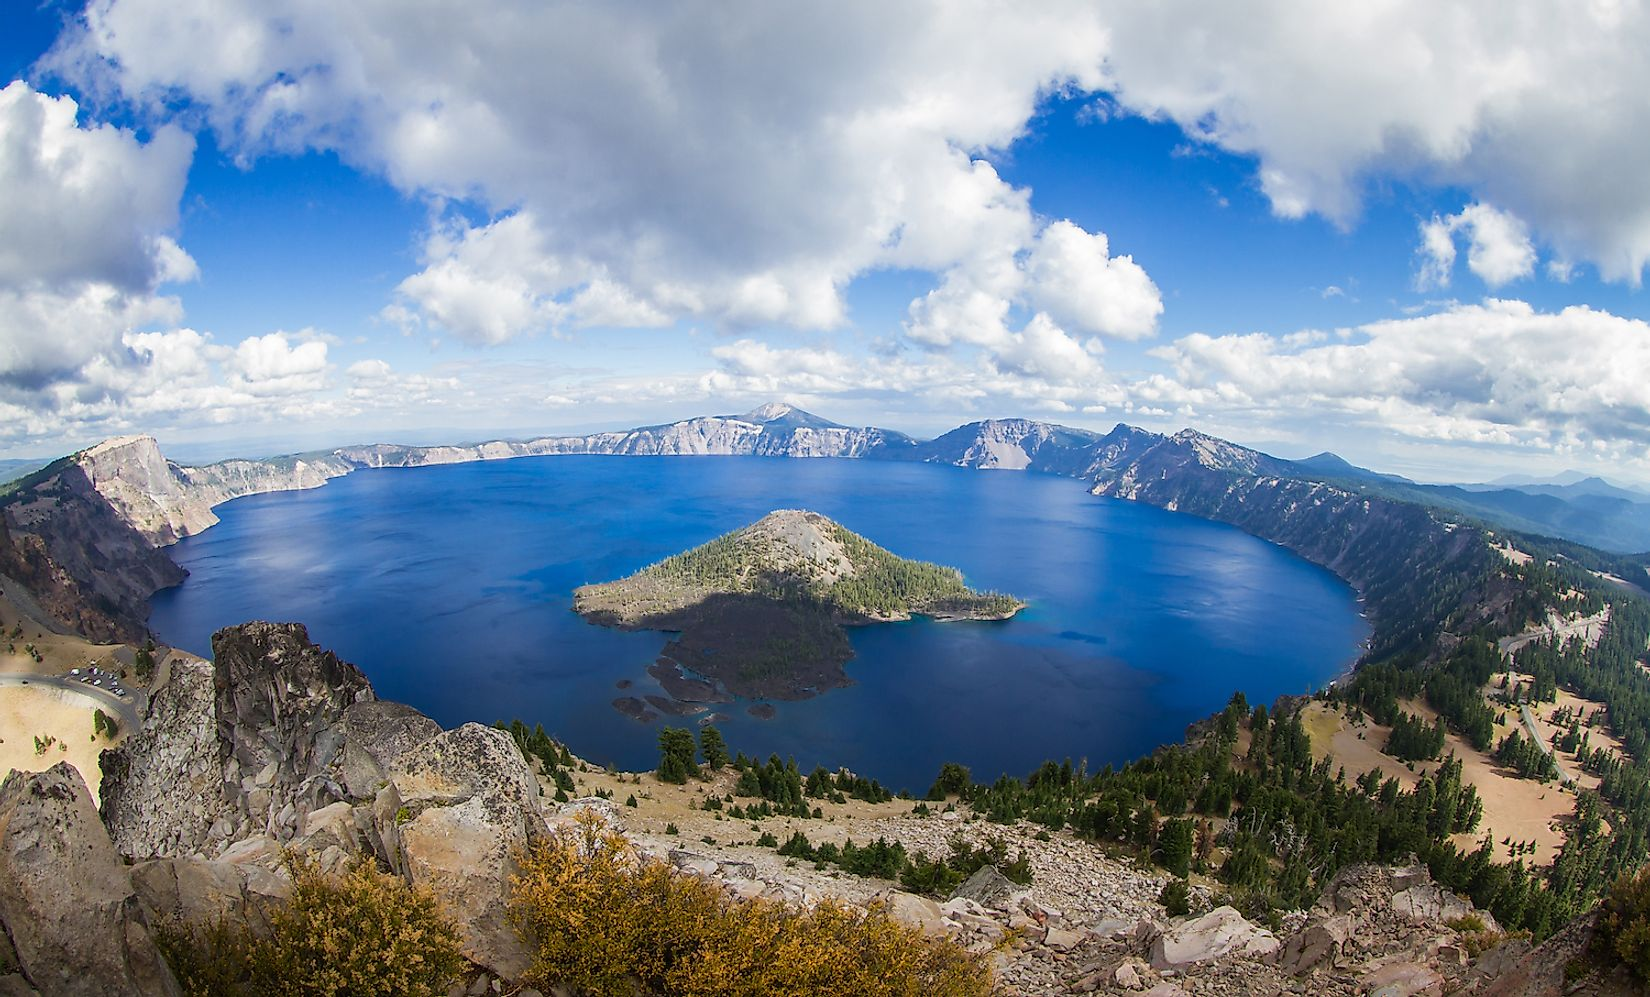 The stunning view of Crater Lake form the top of Watchman's Peak. Image credit: Wollertz/Shutterstock.com